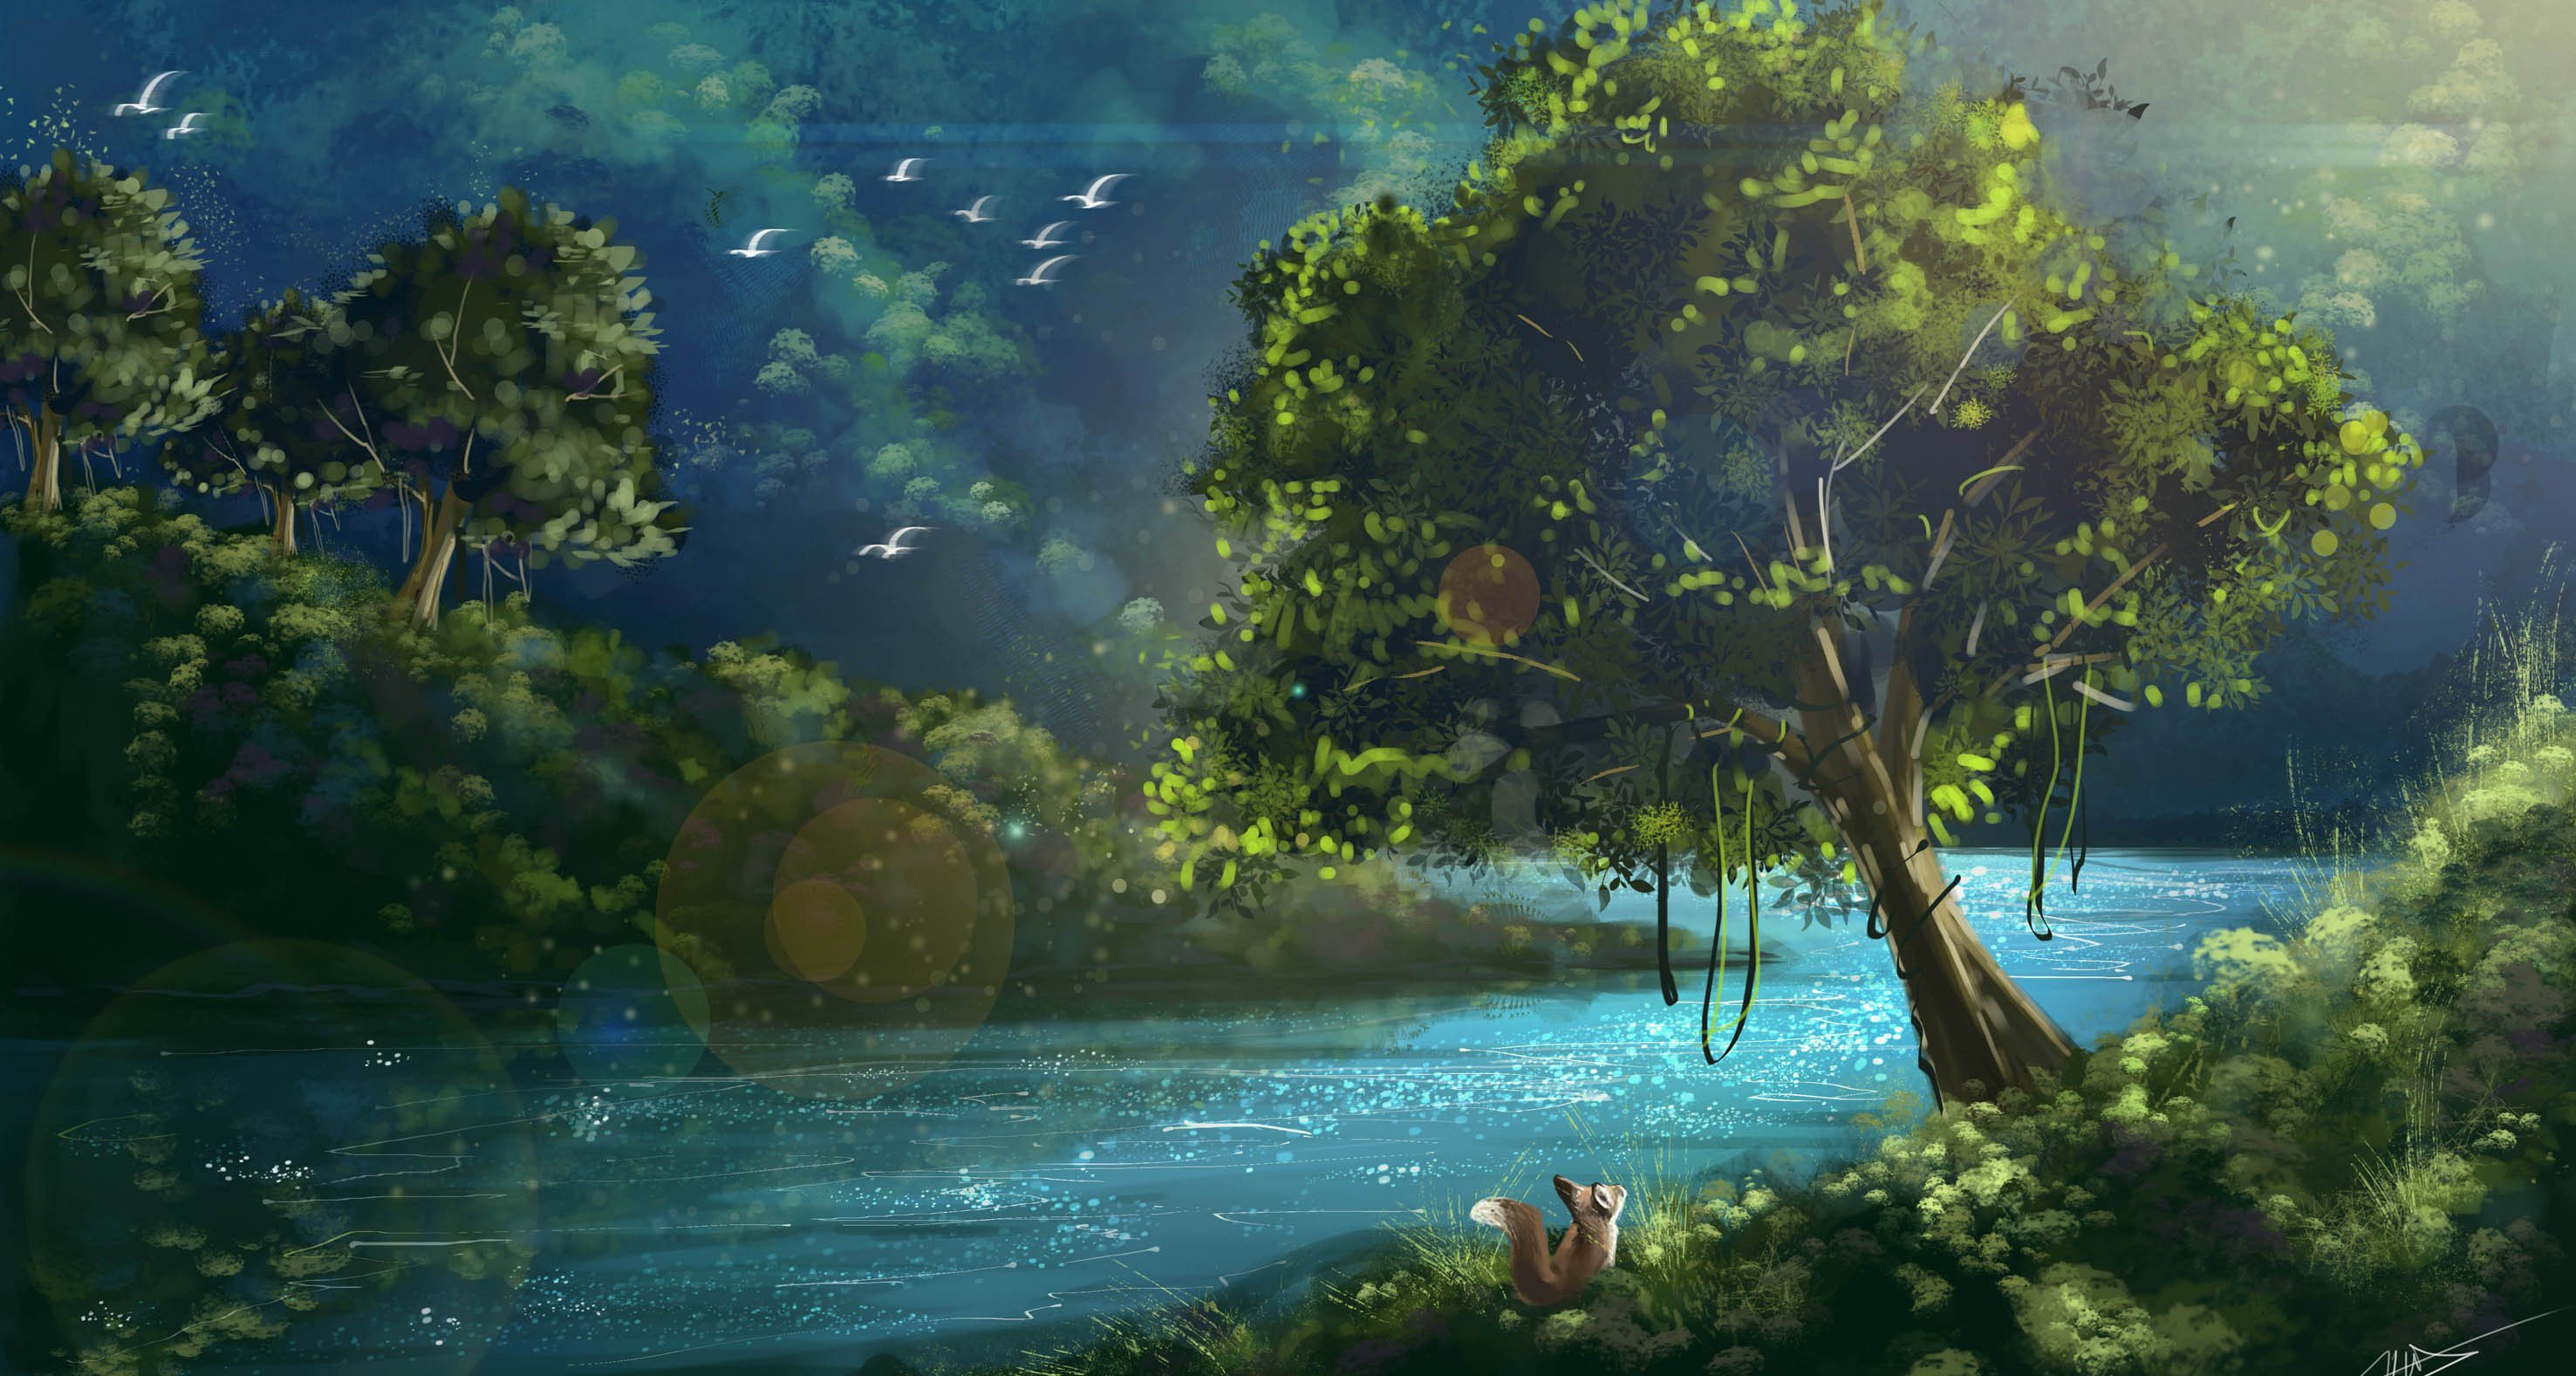 nature painting wallpaper,natural landscape,nature,sky,painting,green